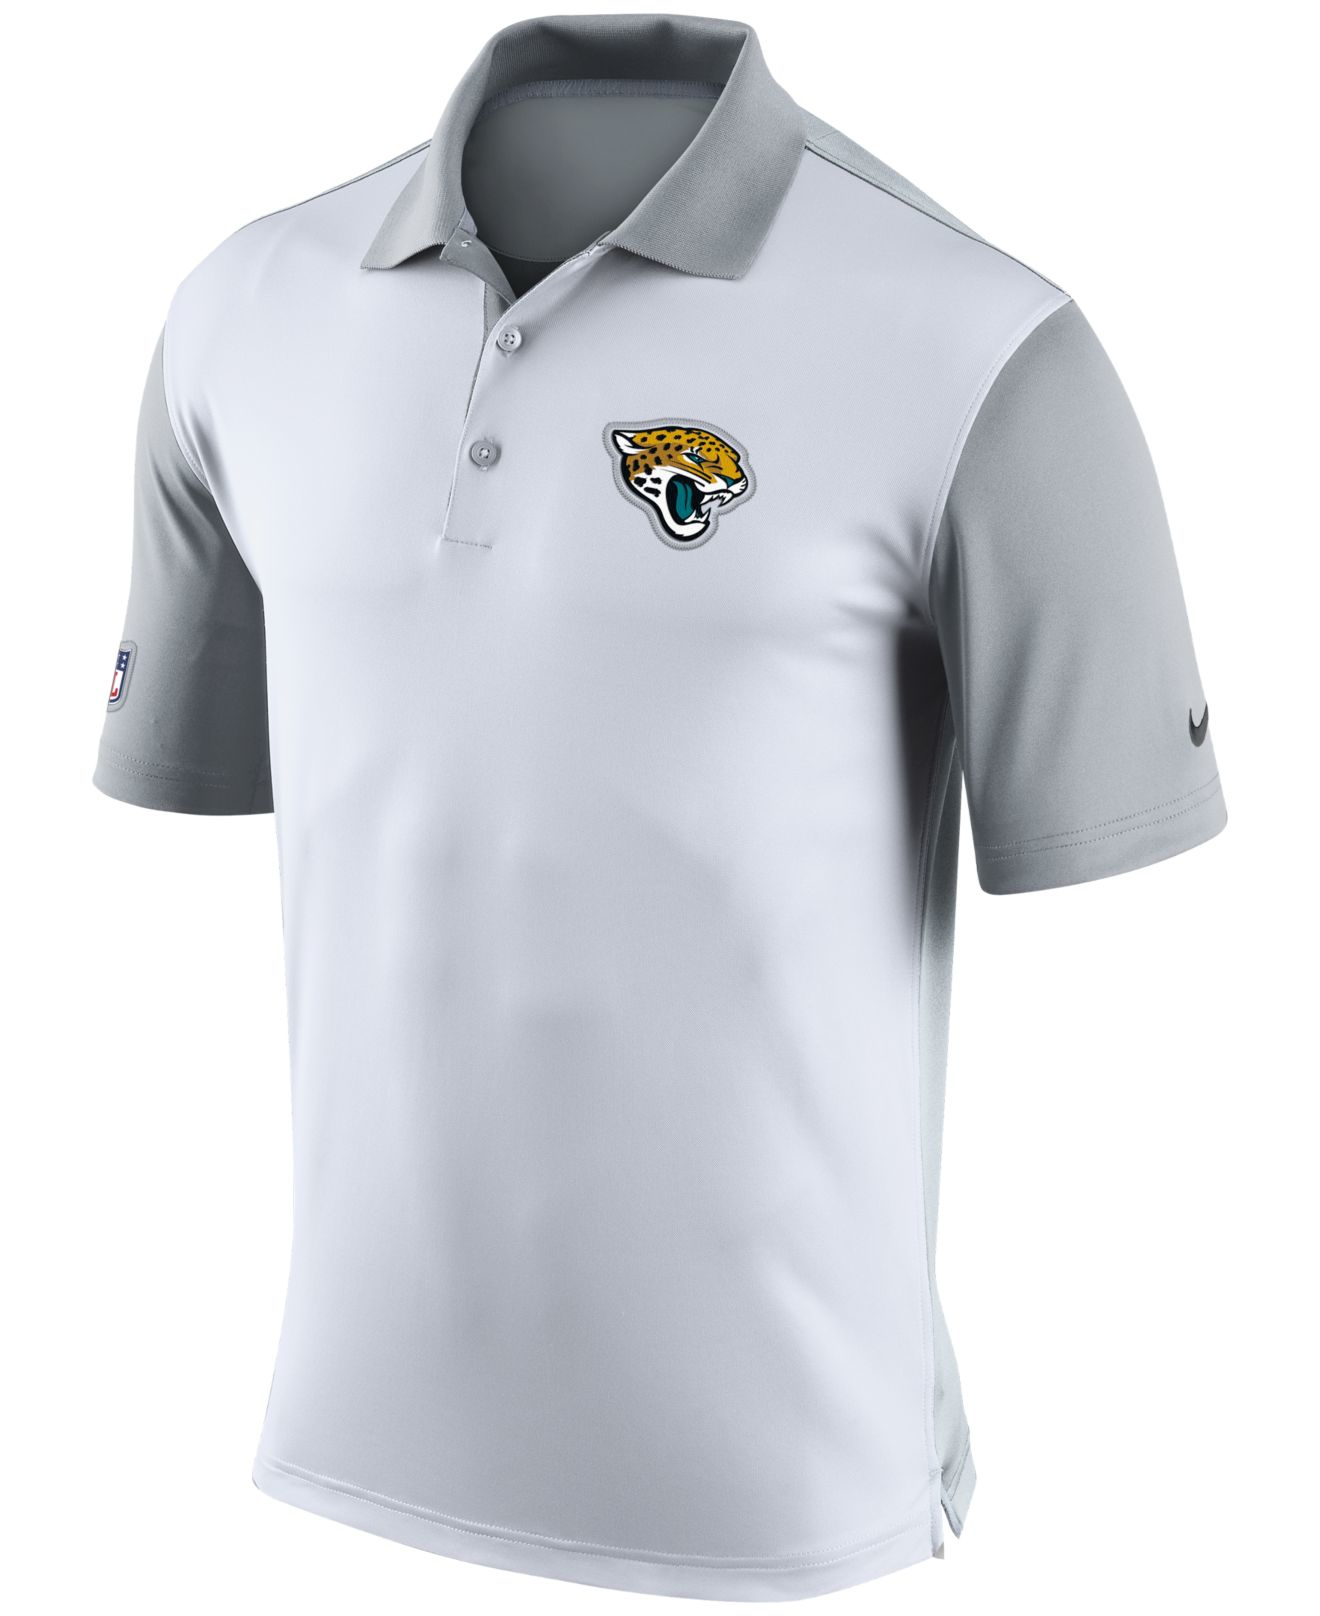 41a822ee809 Mens Nike Polo Shirts On Sale   Chad Crowley Productions